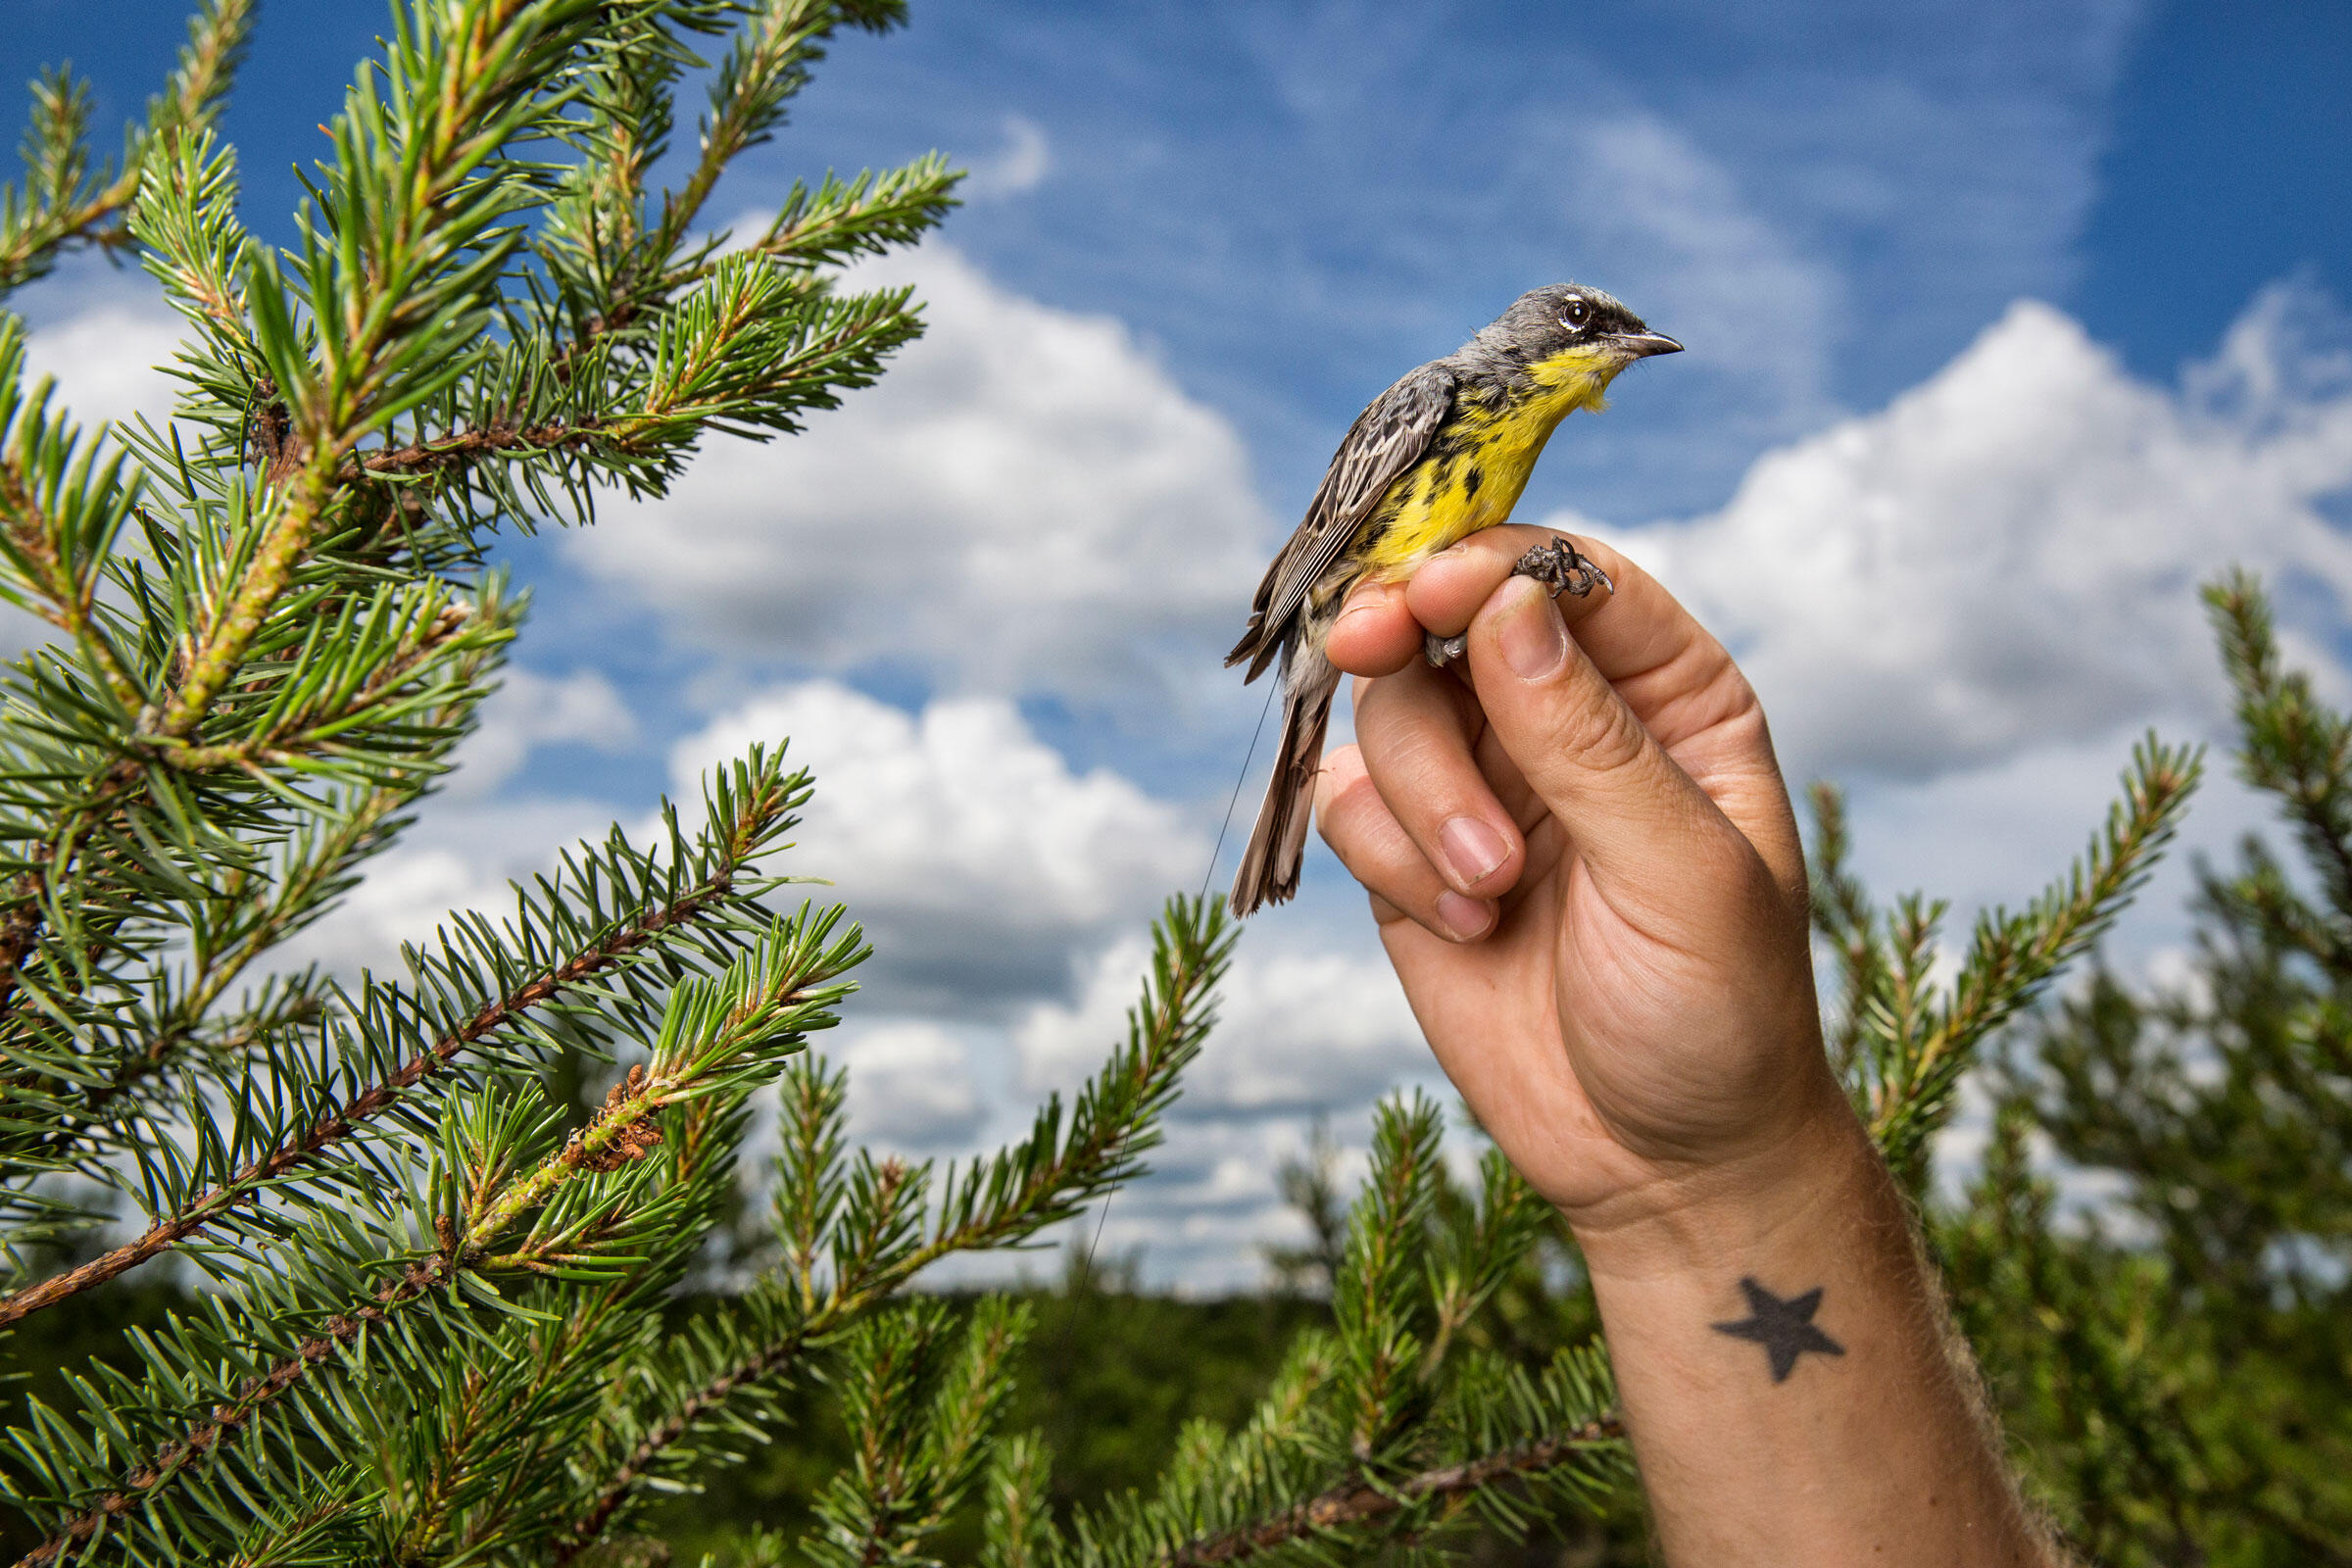 A previously tagged Kirtland's Warbler is captured in its jack pine breeding habitat in Michigan. A little transmitter on its back holds information on where the bird has been from August to May. Karine Aigner